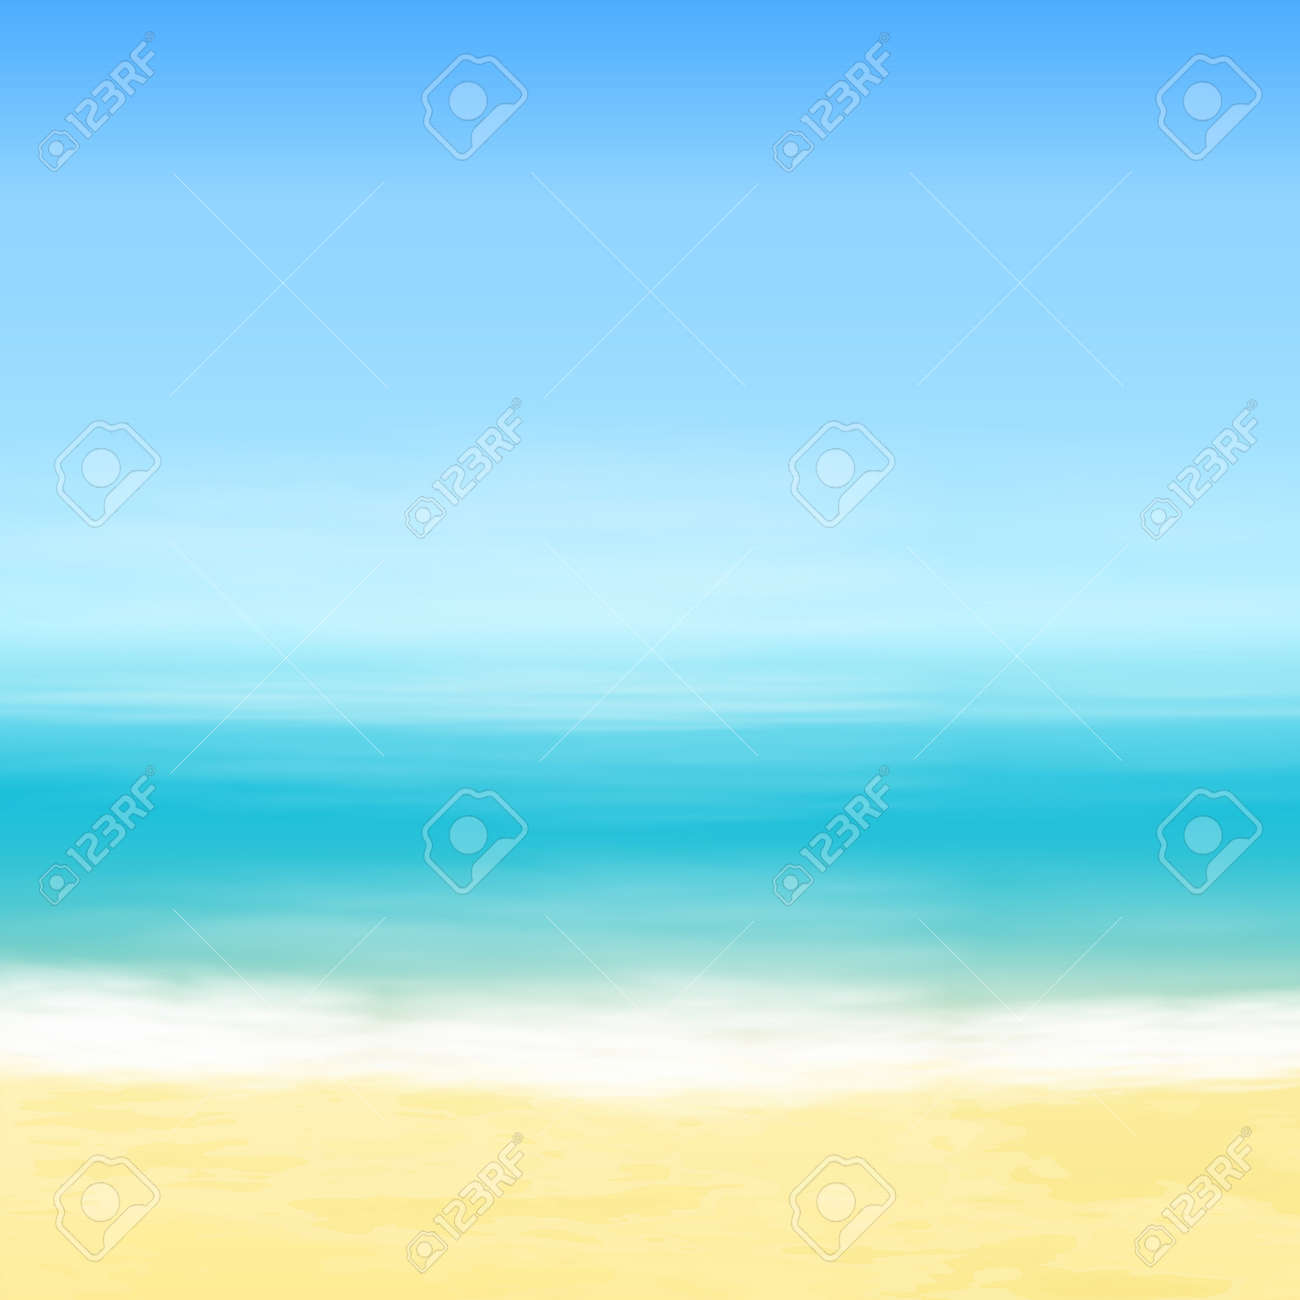 Beach and blue sea. Tropical background. - 35819428